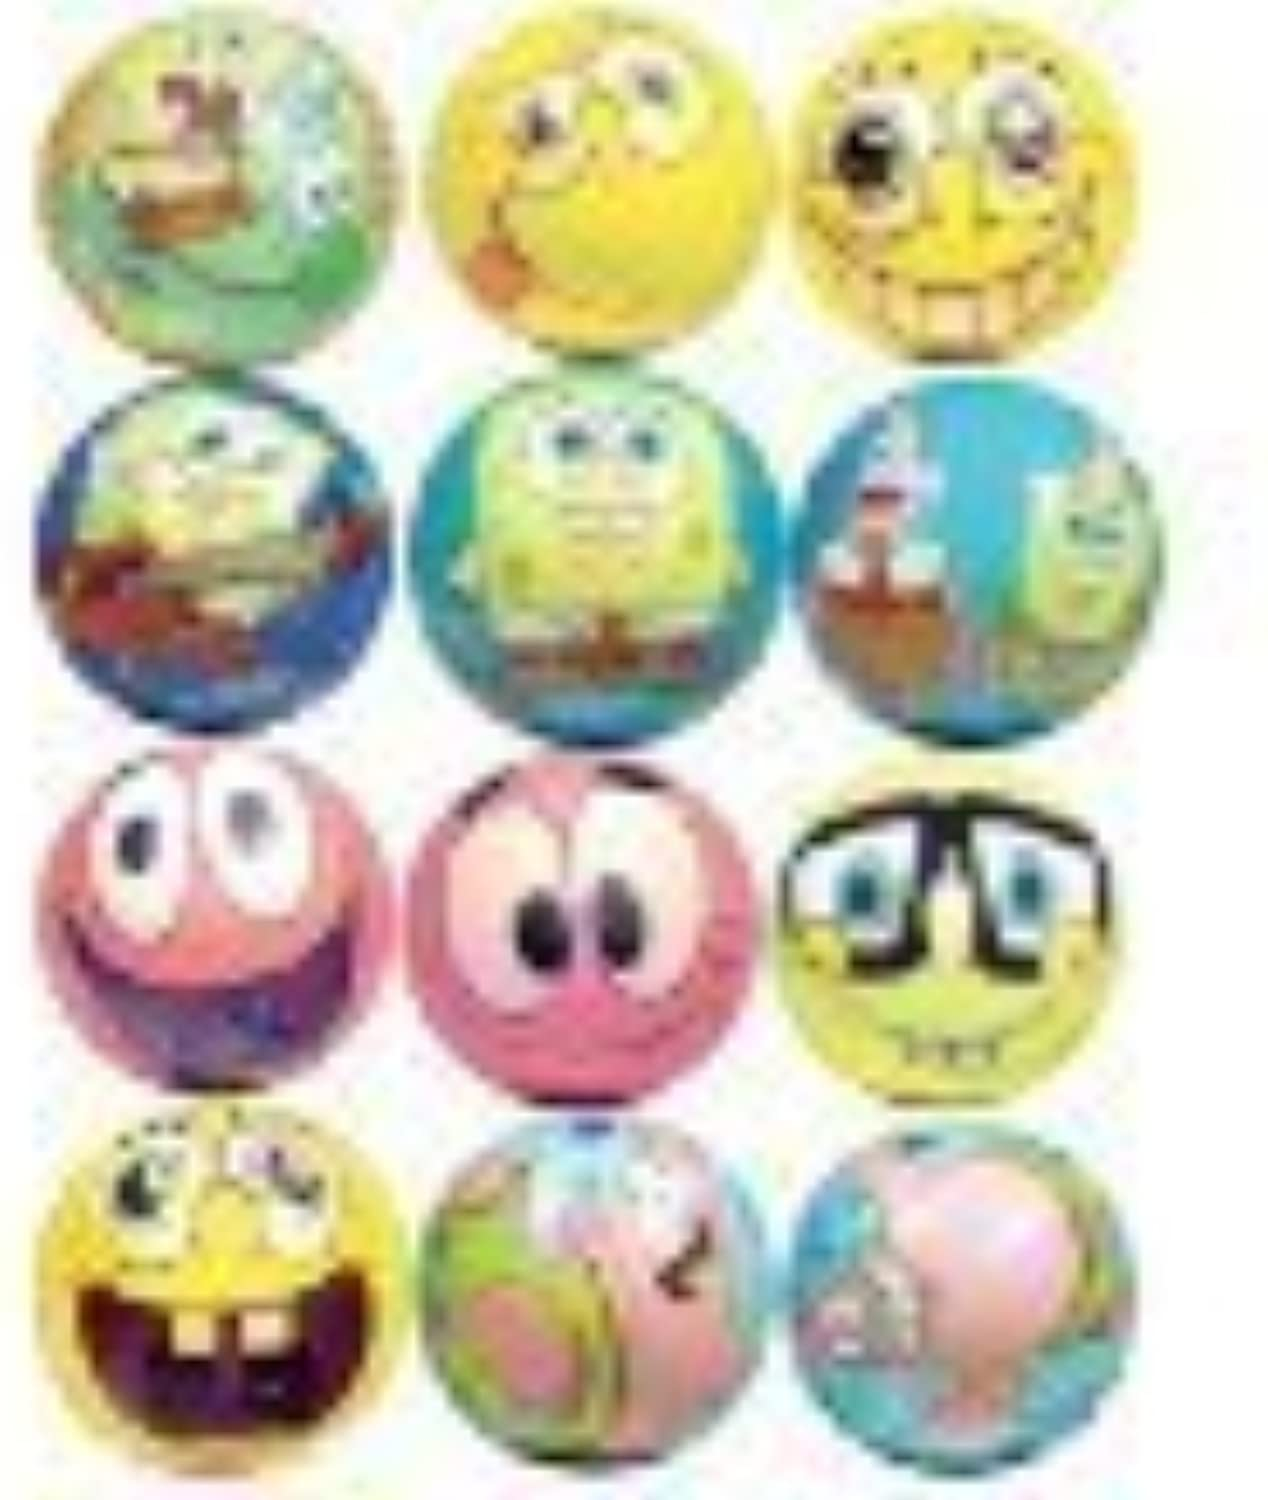 Spongebob Squarepants Party Favors  Soft FoamGraphic balls Lot of 20 by SpongeBob SquarePants